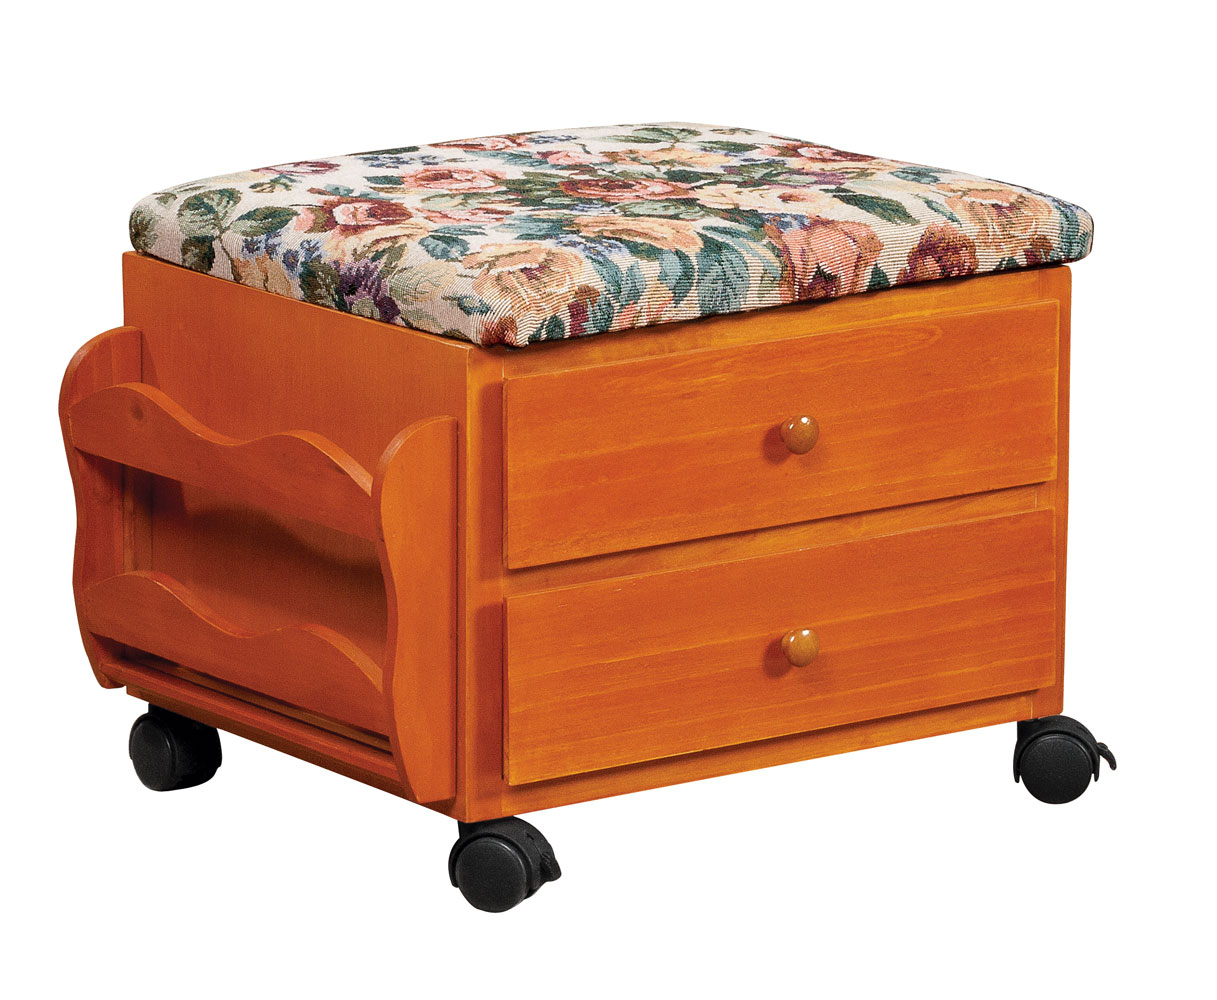 Exceptionnel EasyComforts Roses Storage Rolling Ottoman By OakRidge Accents